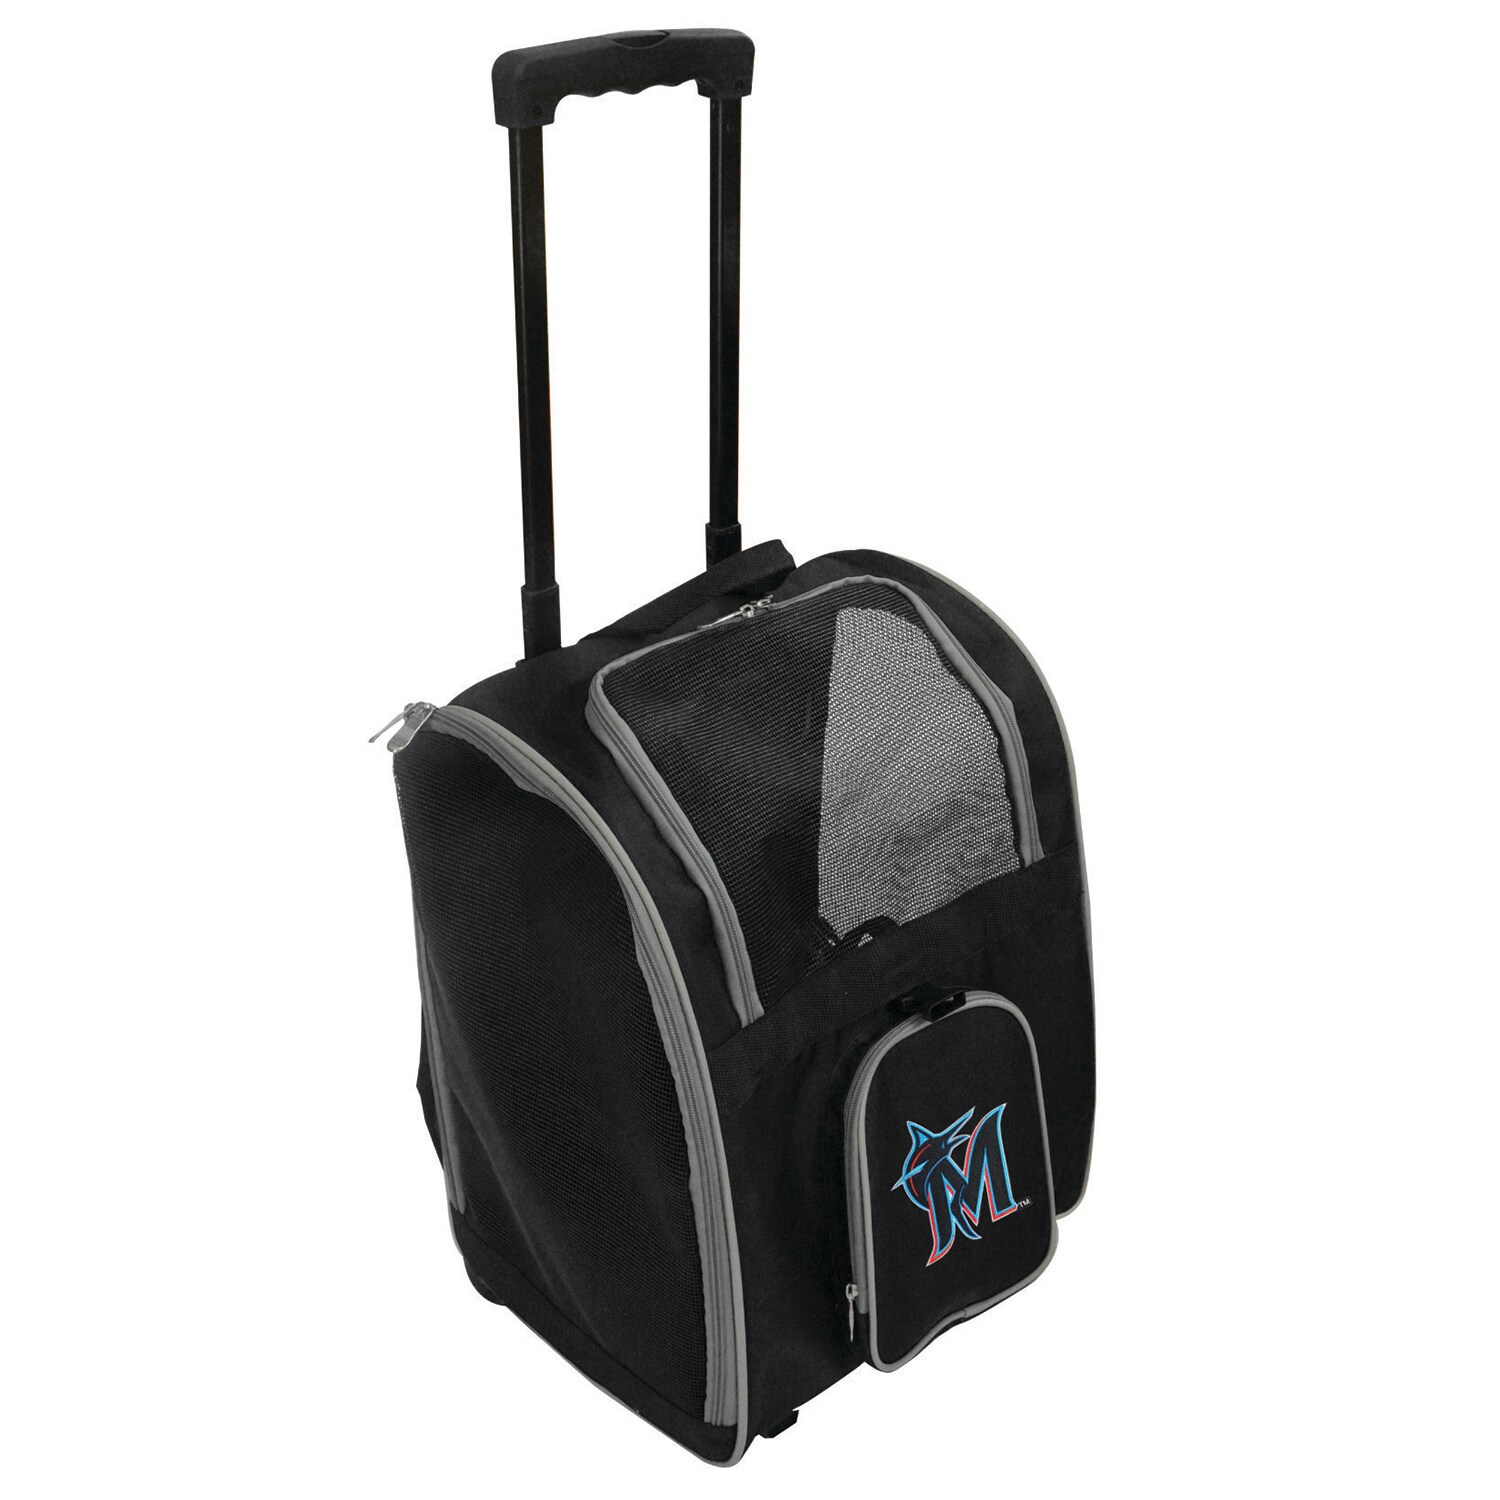 Miami Marlins 2-Wheeled Roller Pet Carrier - Black